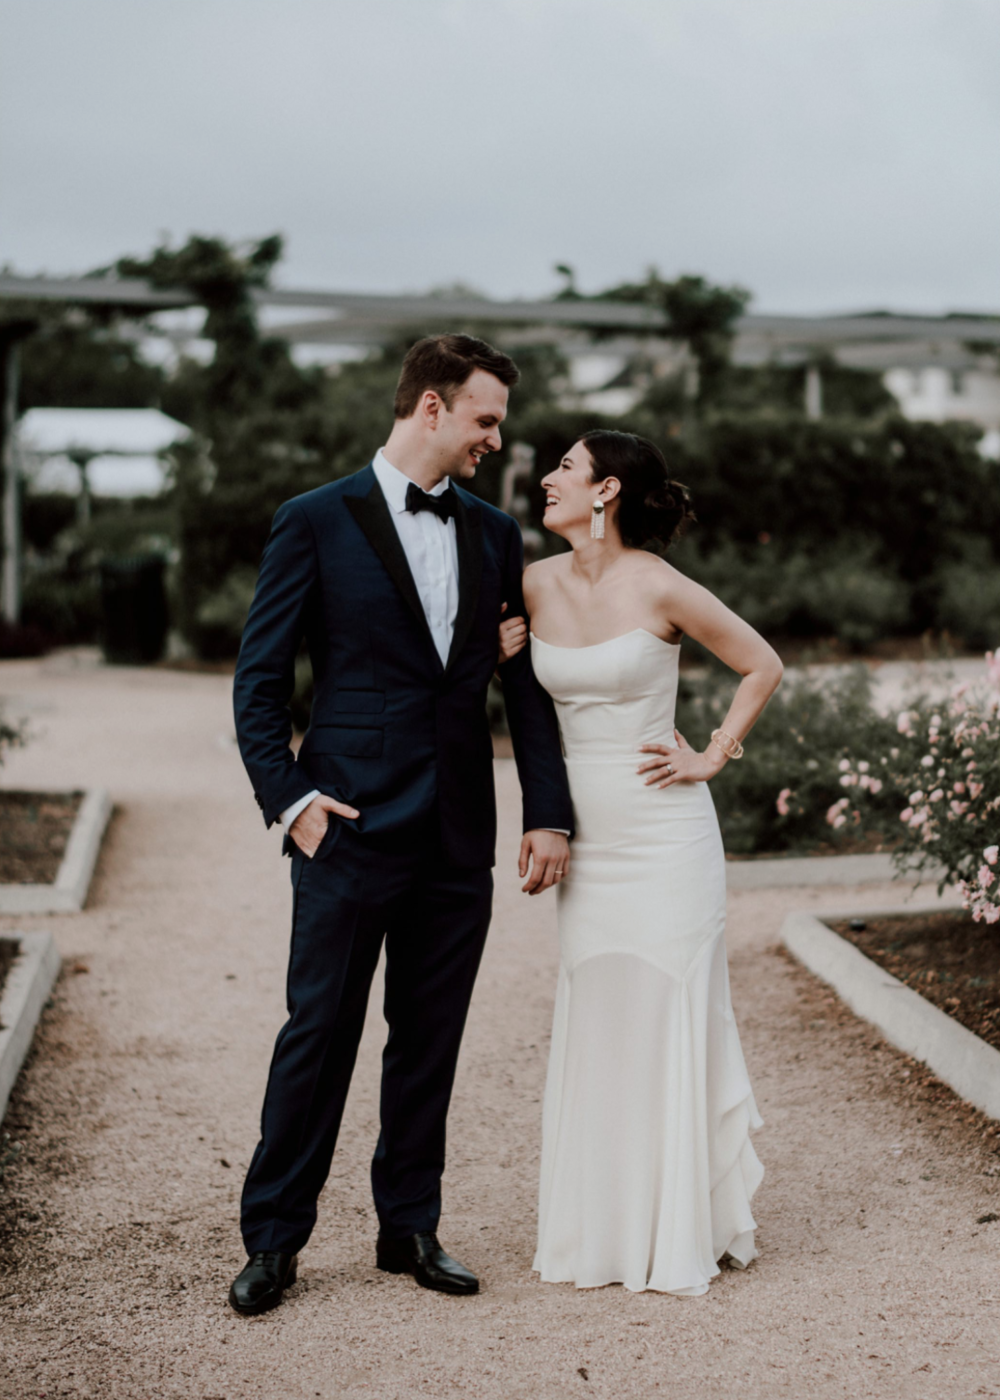 bride-groom-centennial-gardens-modern-wedding-moody-photography-joseph-west-maxit-flower-design-in-houston-texas